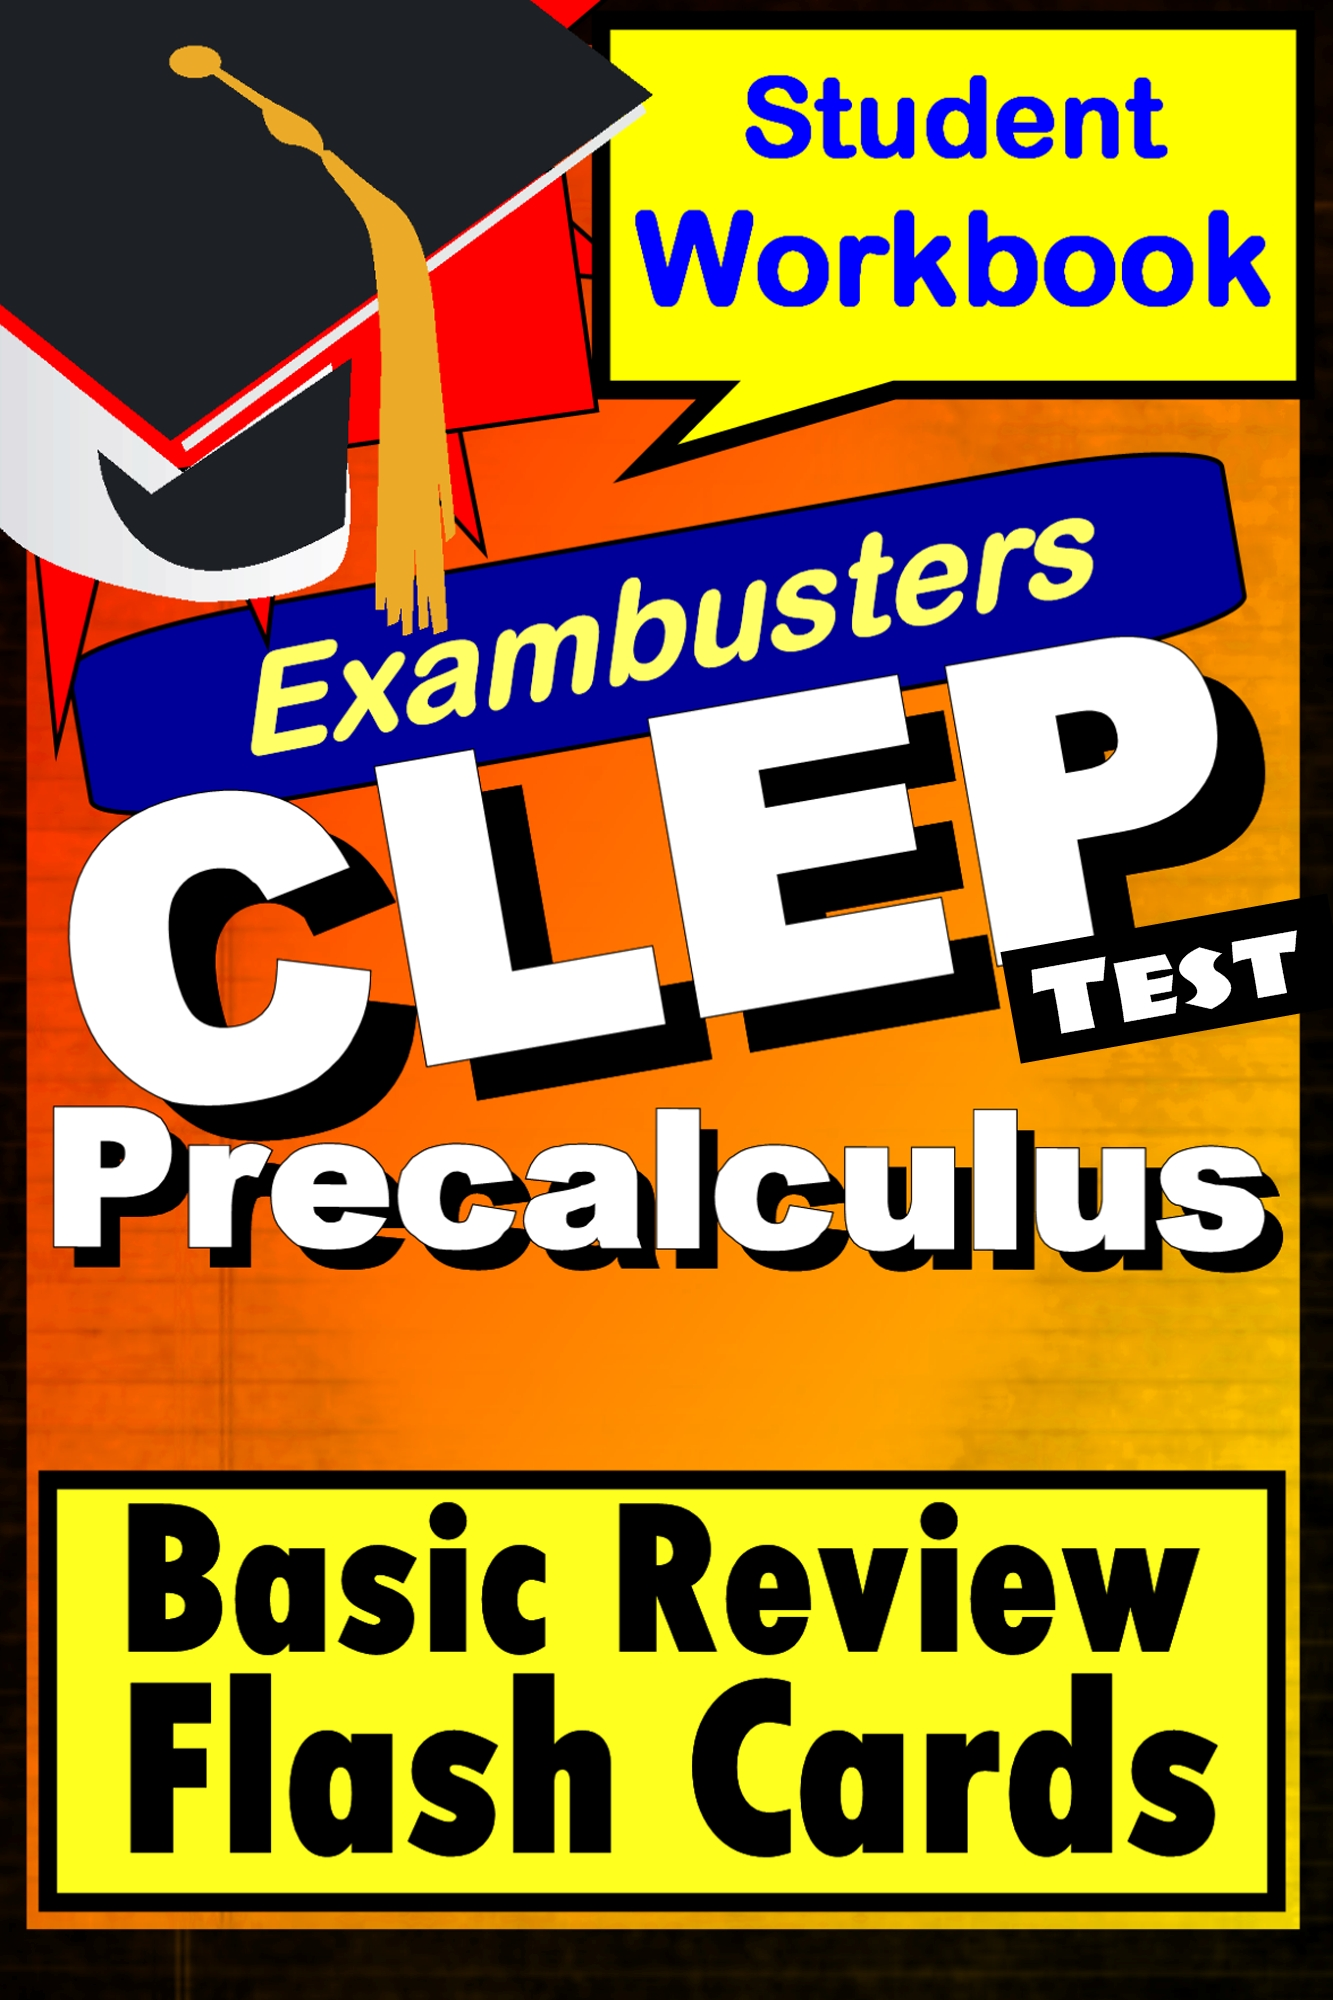 CLEP Precalculus Test--Exambusters Flashcards